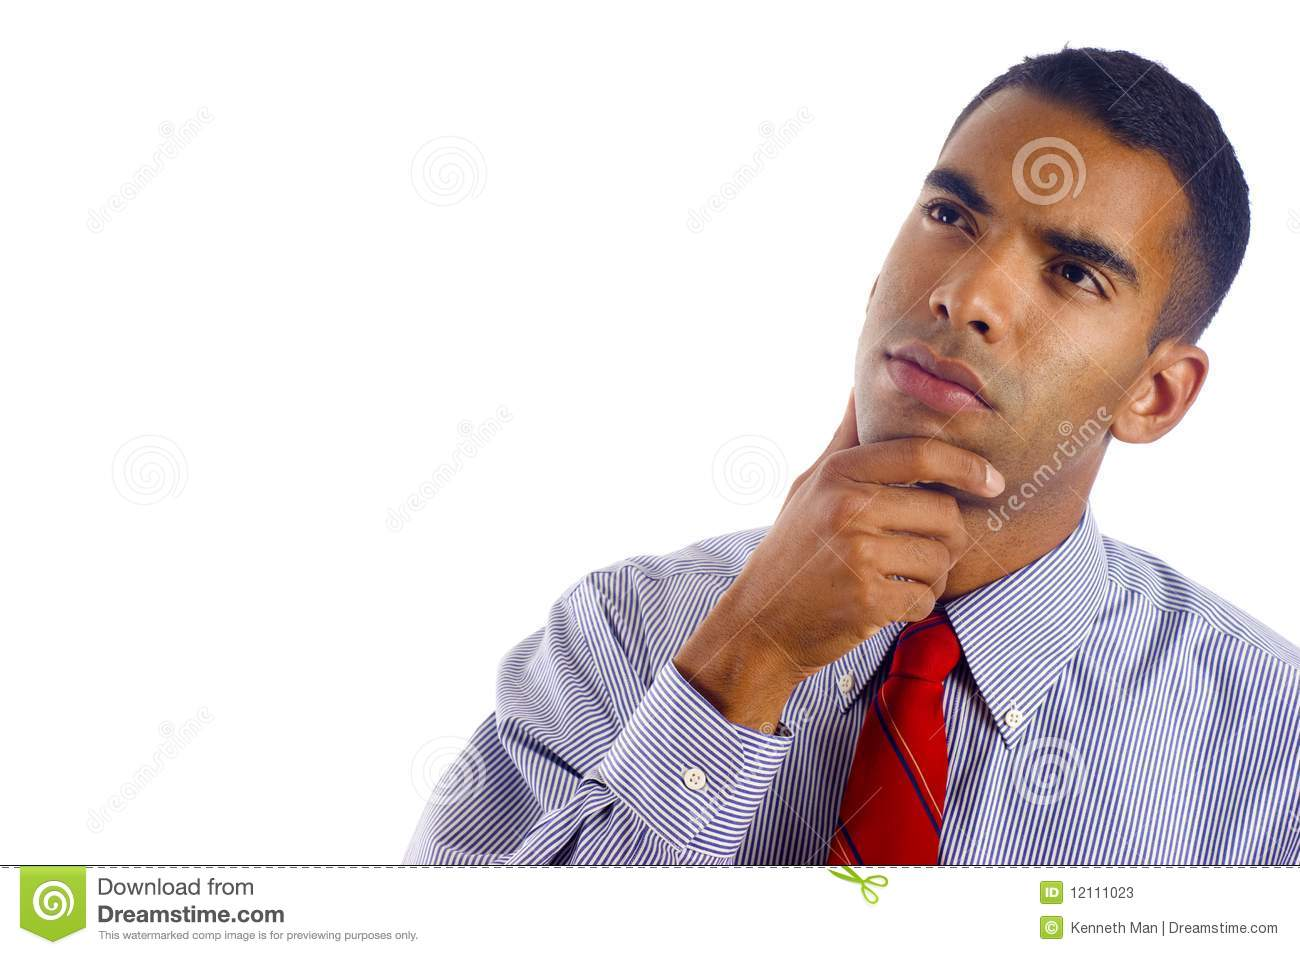 Who is the stock image doctor? - Sermo